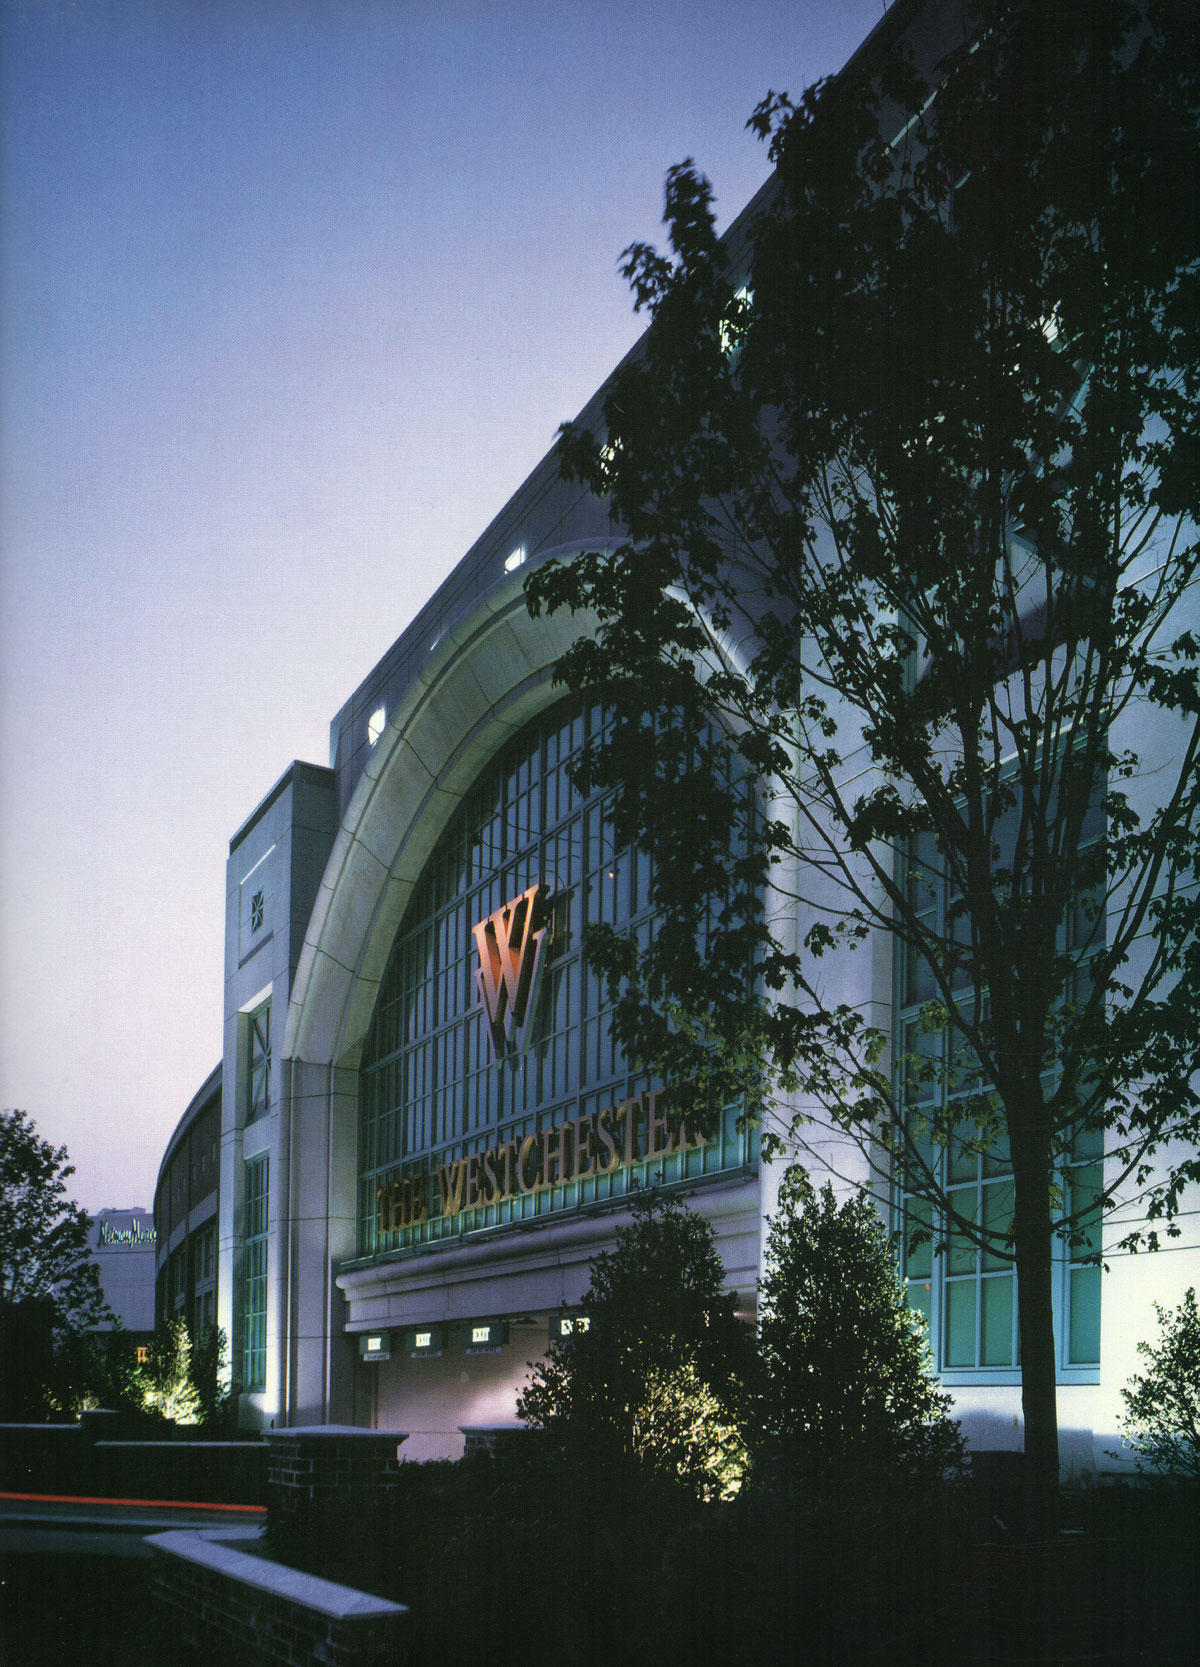 The Westchester Mall Entrance